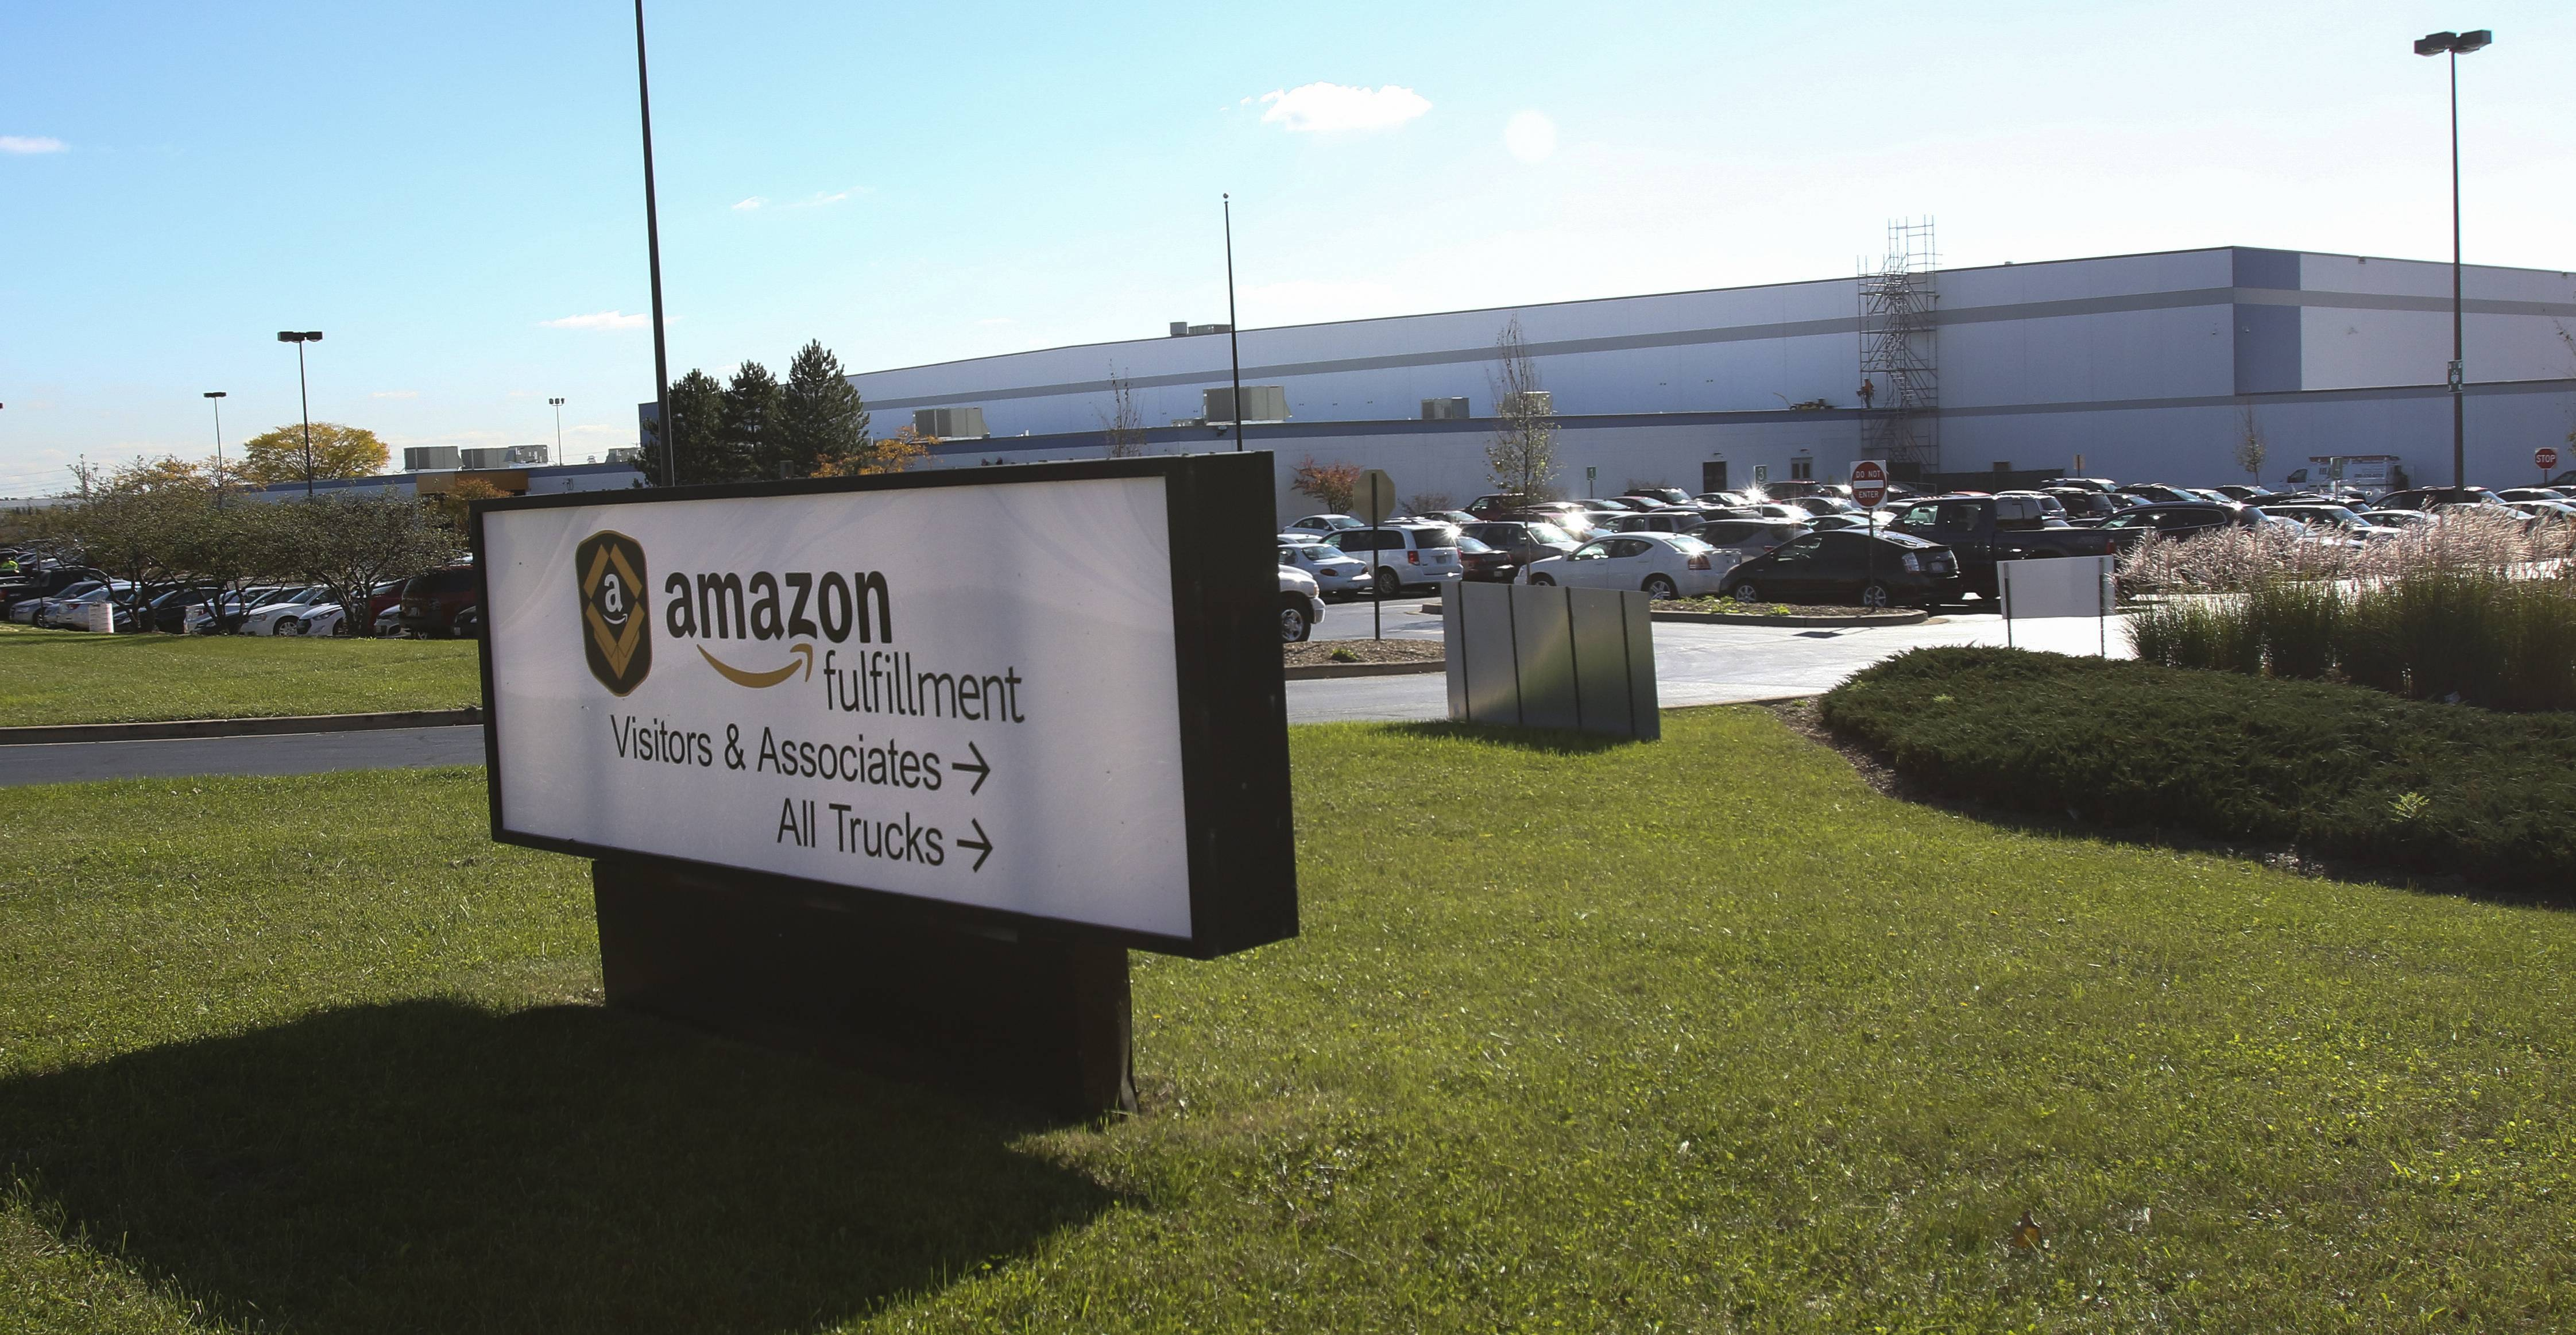 Amazon opened a distribution center in Romeoville in September.